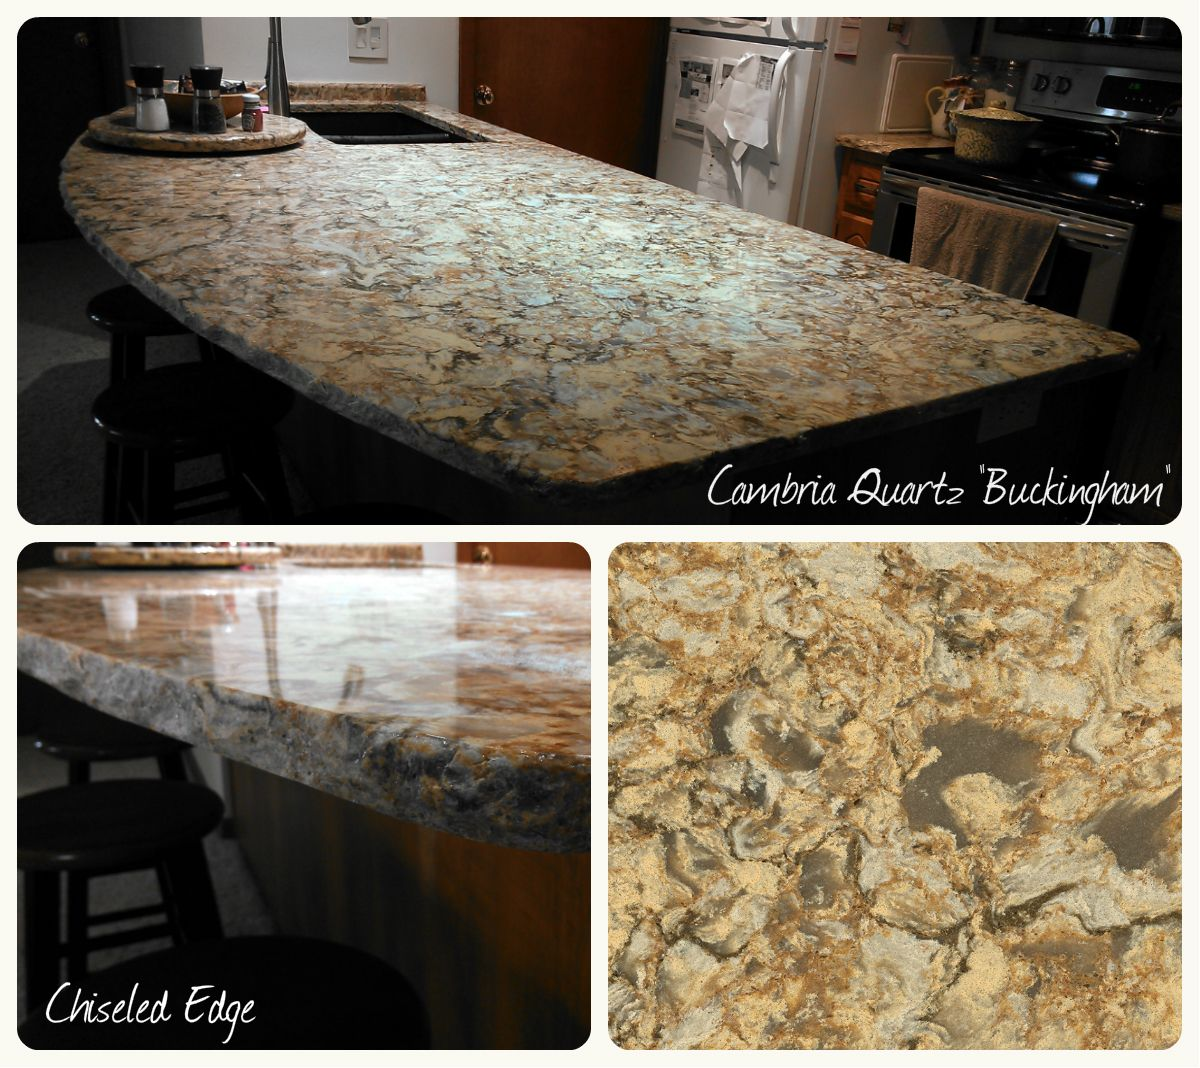 Cambria Quartz, Buckingham, Chiseled Edge [Copper River Cabinet Company]